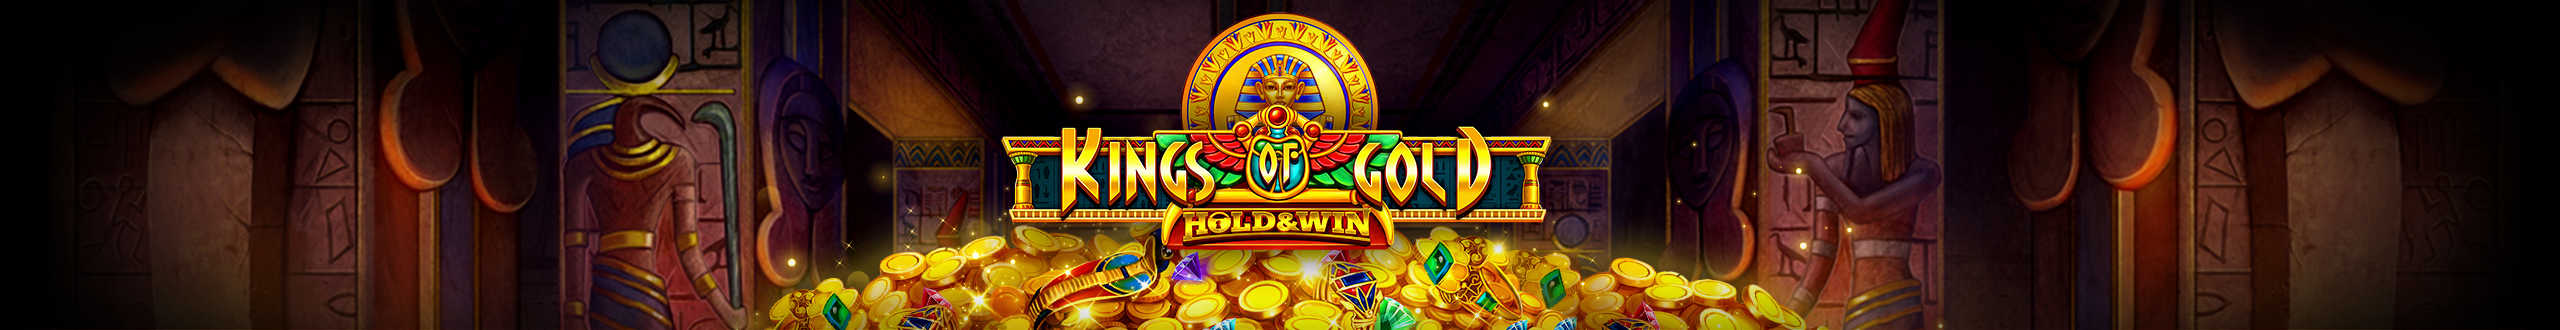 Kings of Gold!